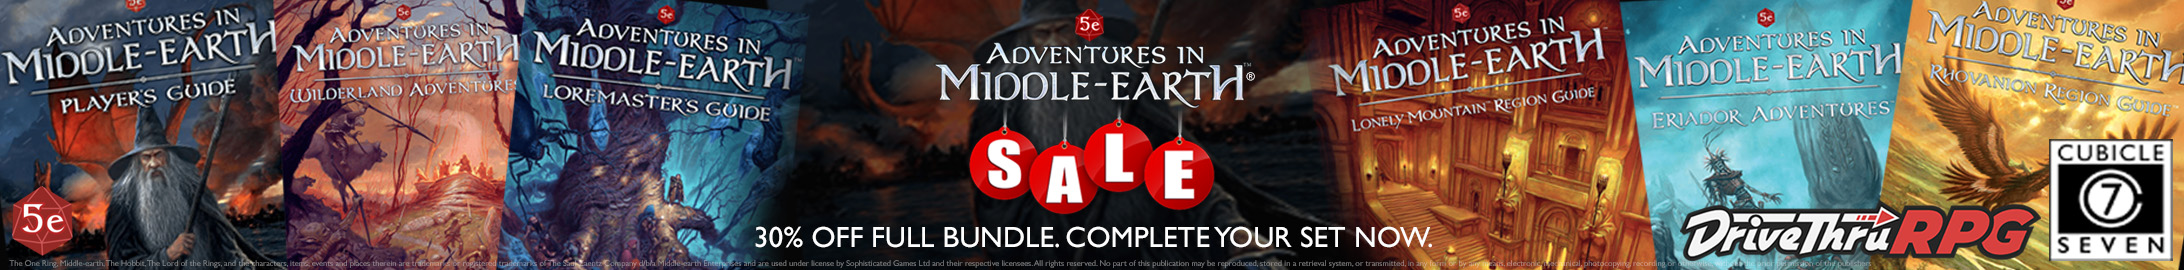 Complete your collection: The Adventures in Middle Earth Bundle - 30% off @ DriveThruRPG.com